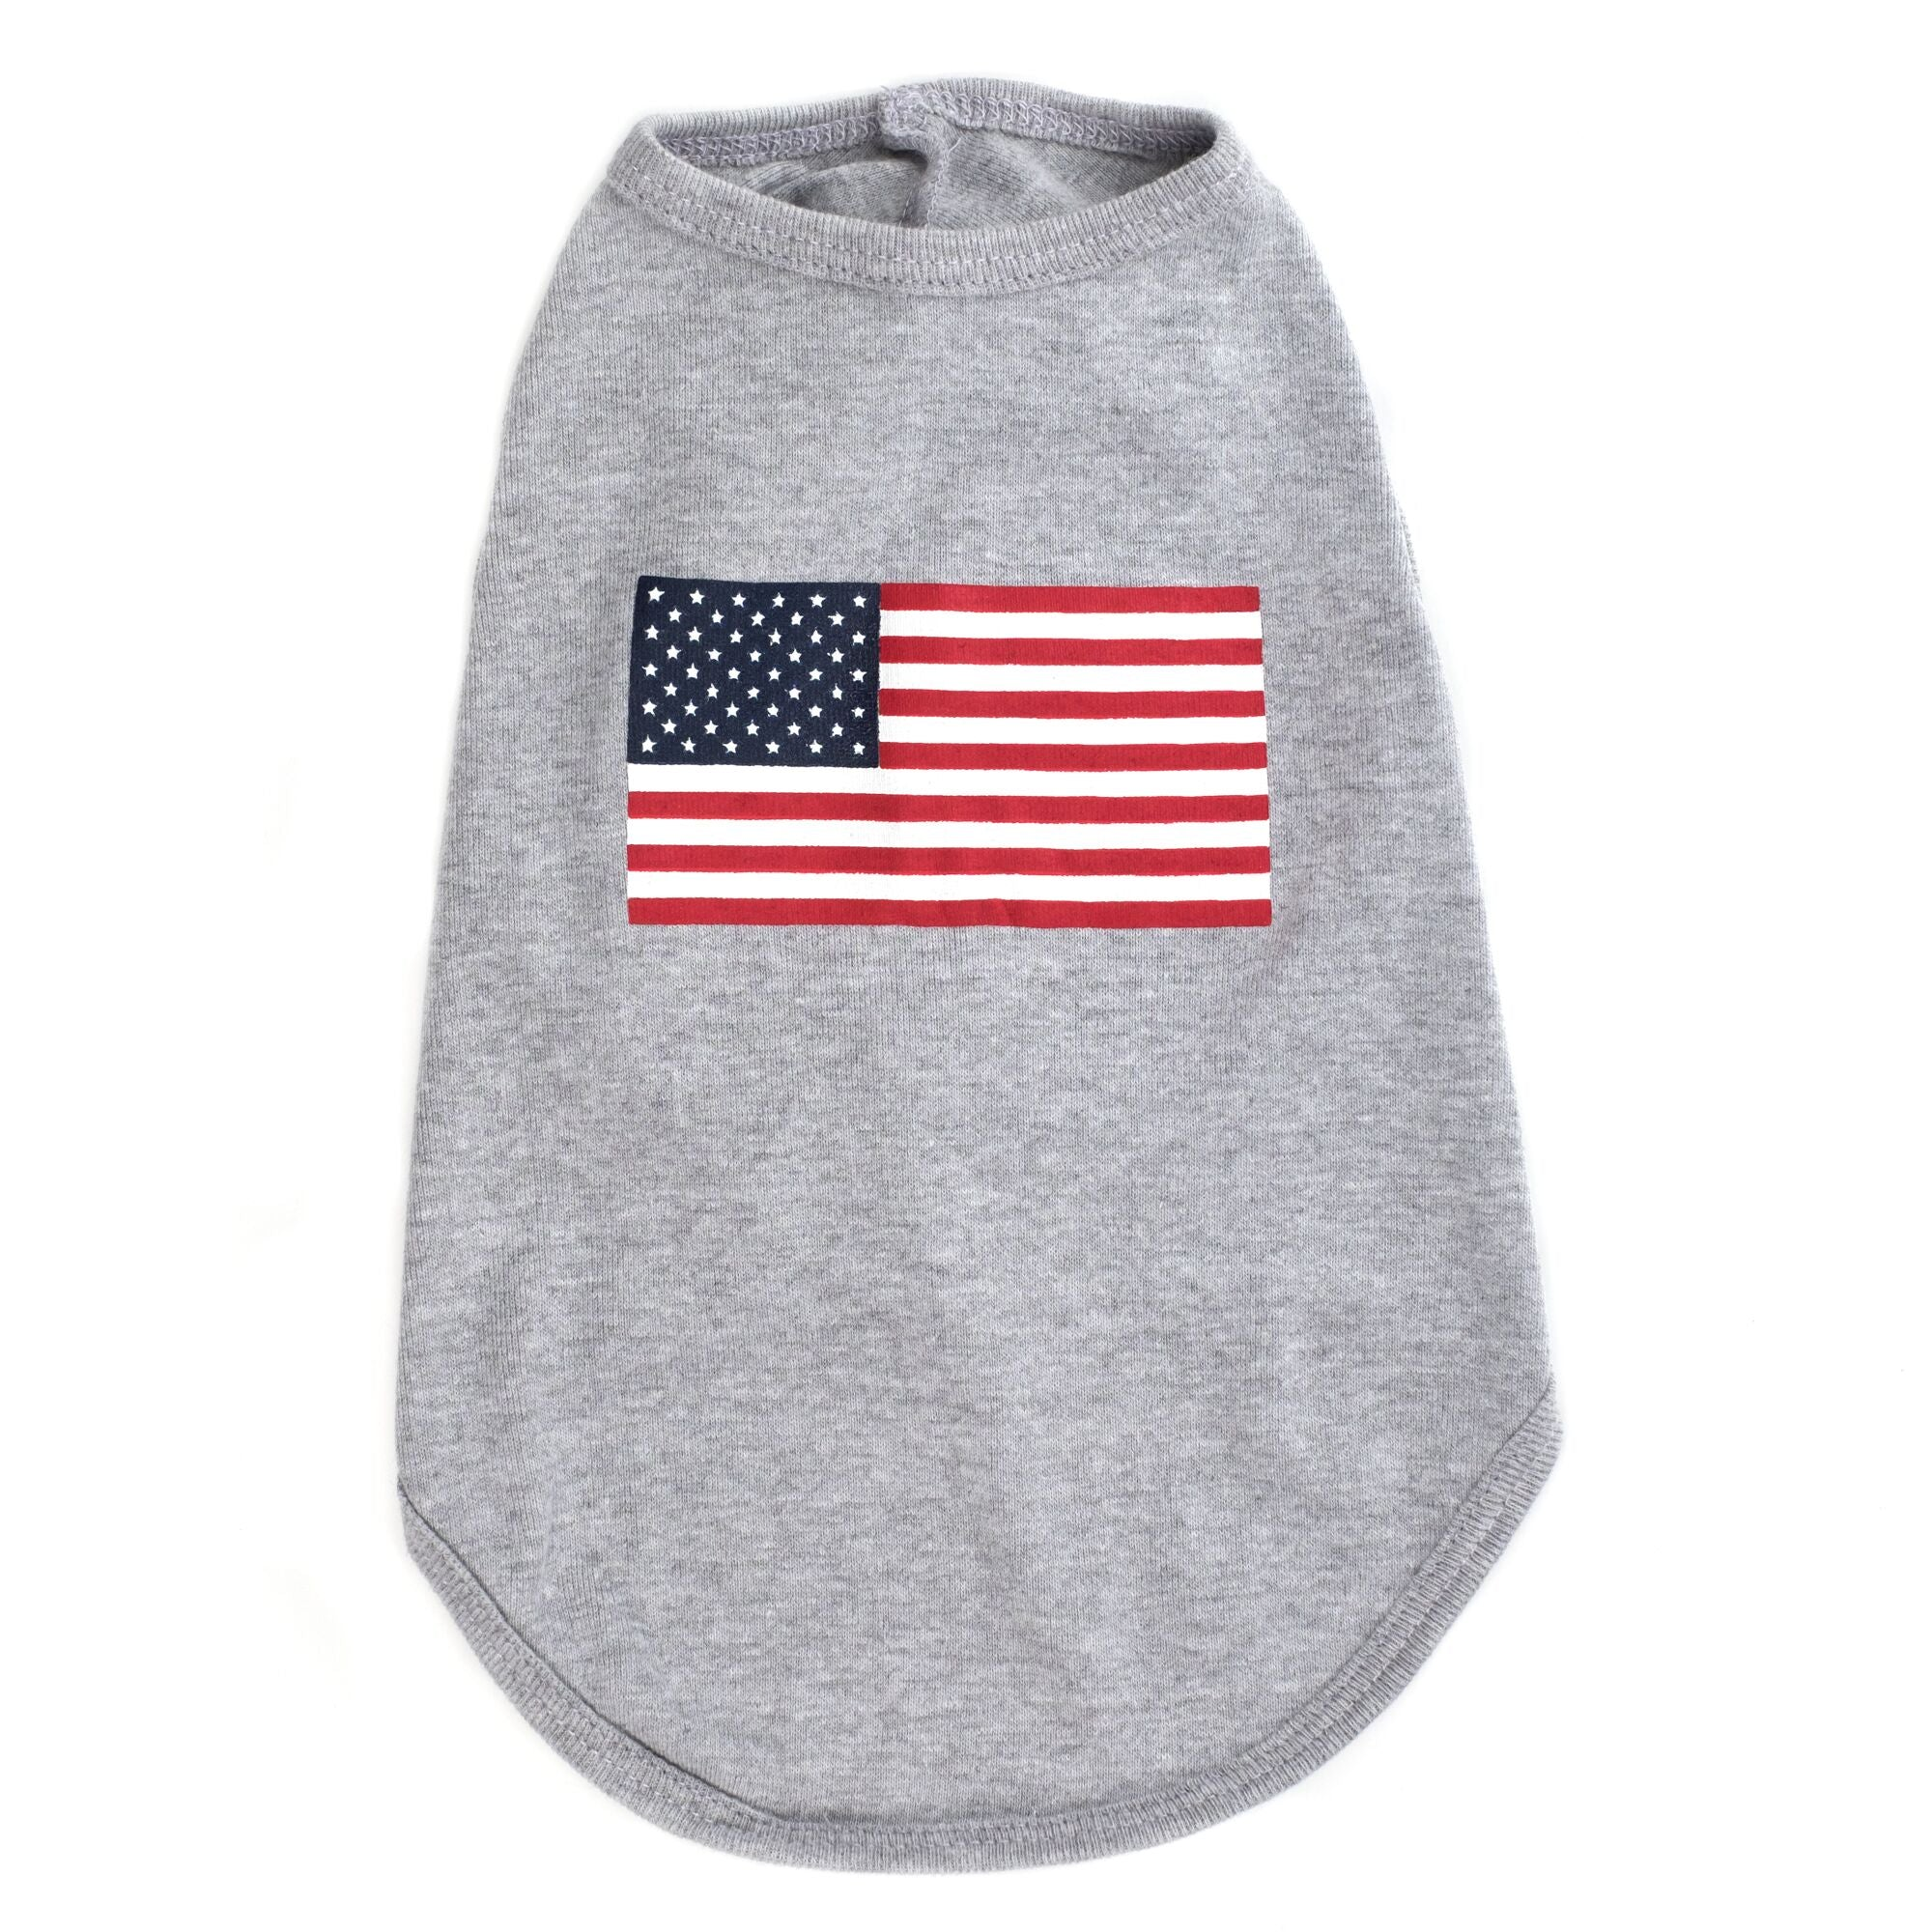 Dog Tank Top USA American Flag by The Worthy Dog